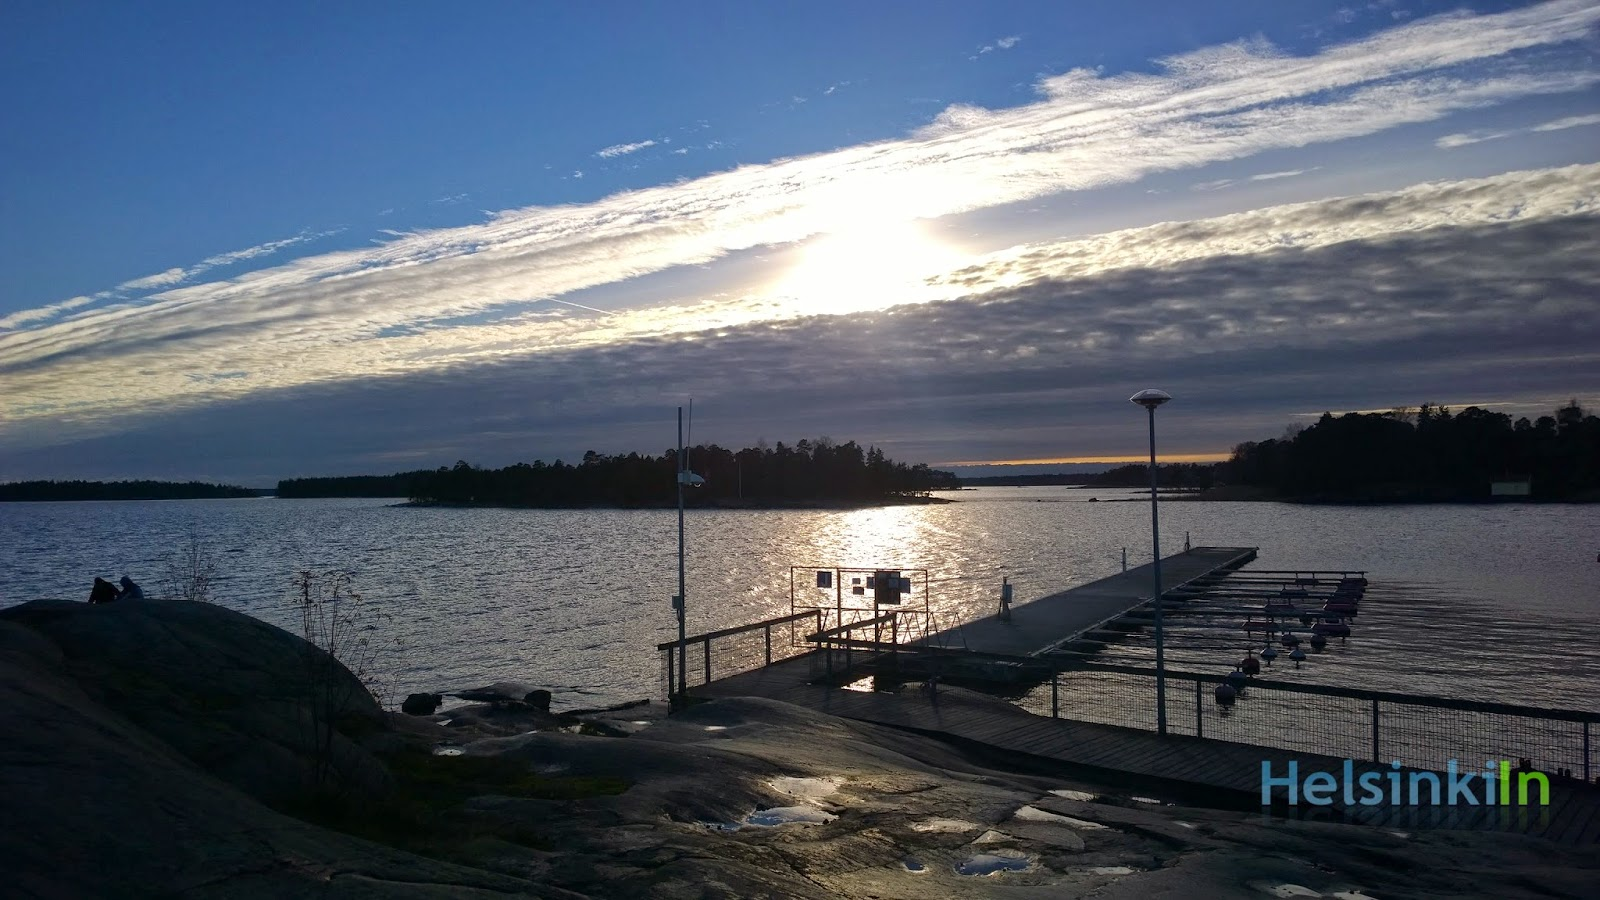 sea at Haukilahti